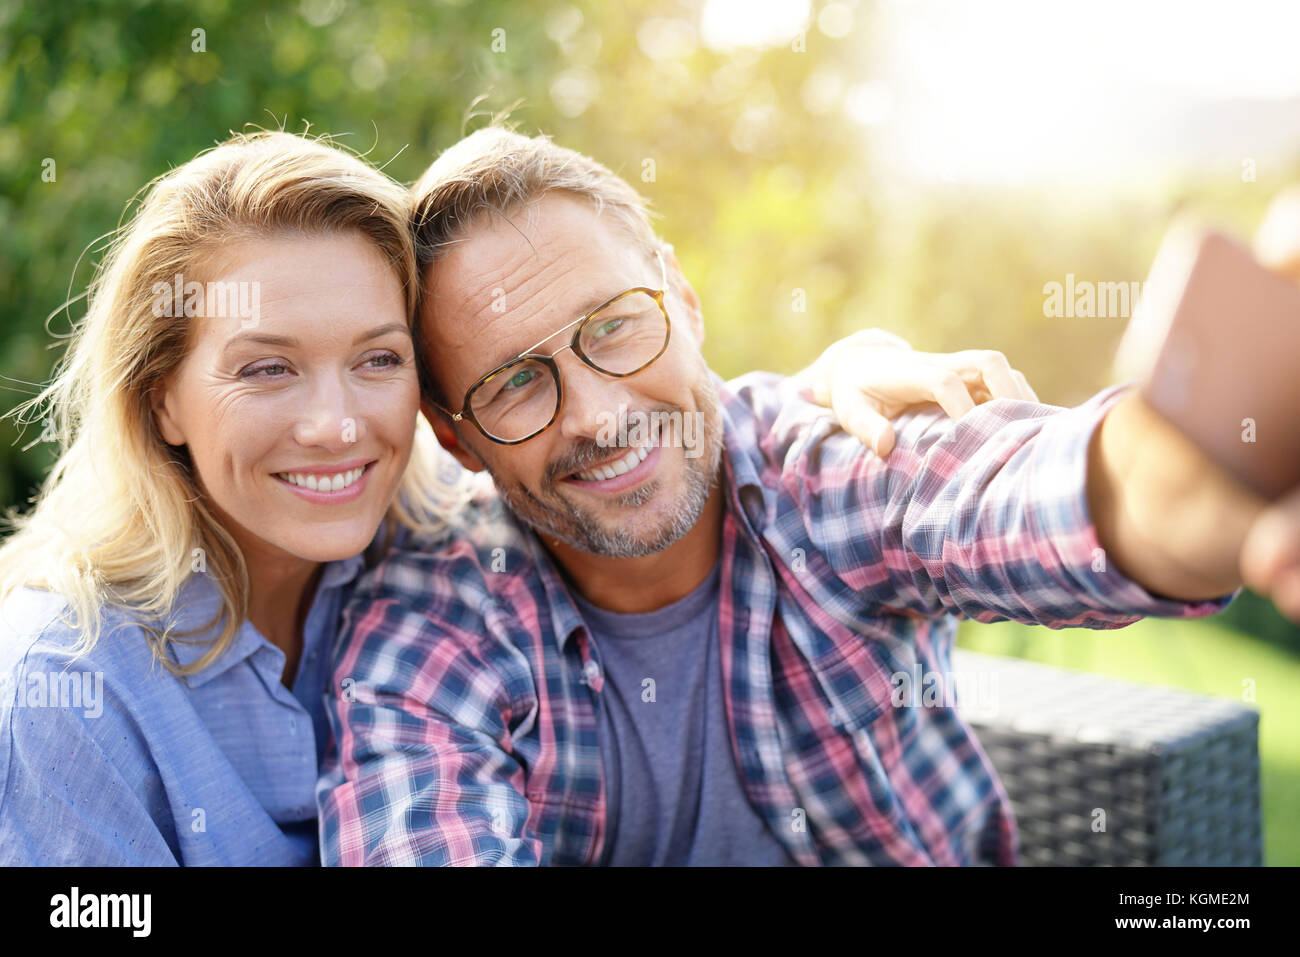 Portrait of cheerful mature couple taking selfie picture - Stock Image